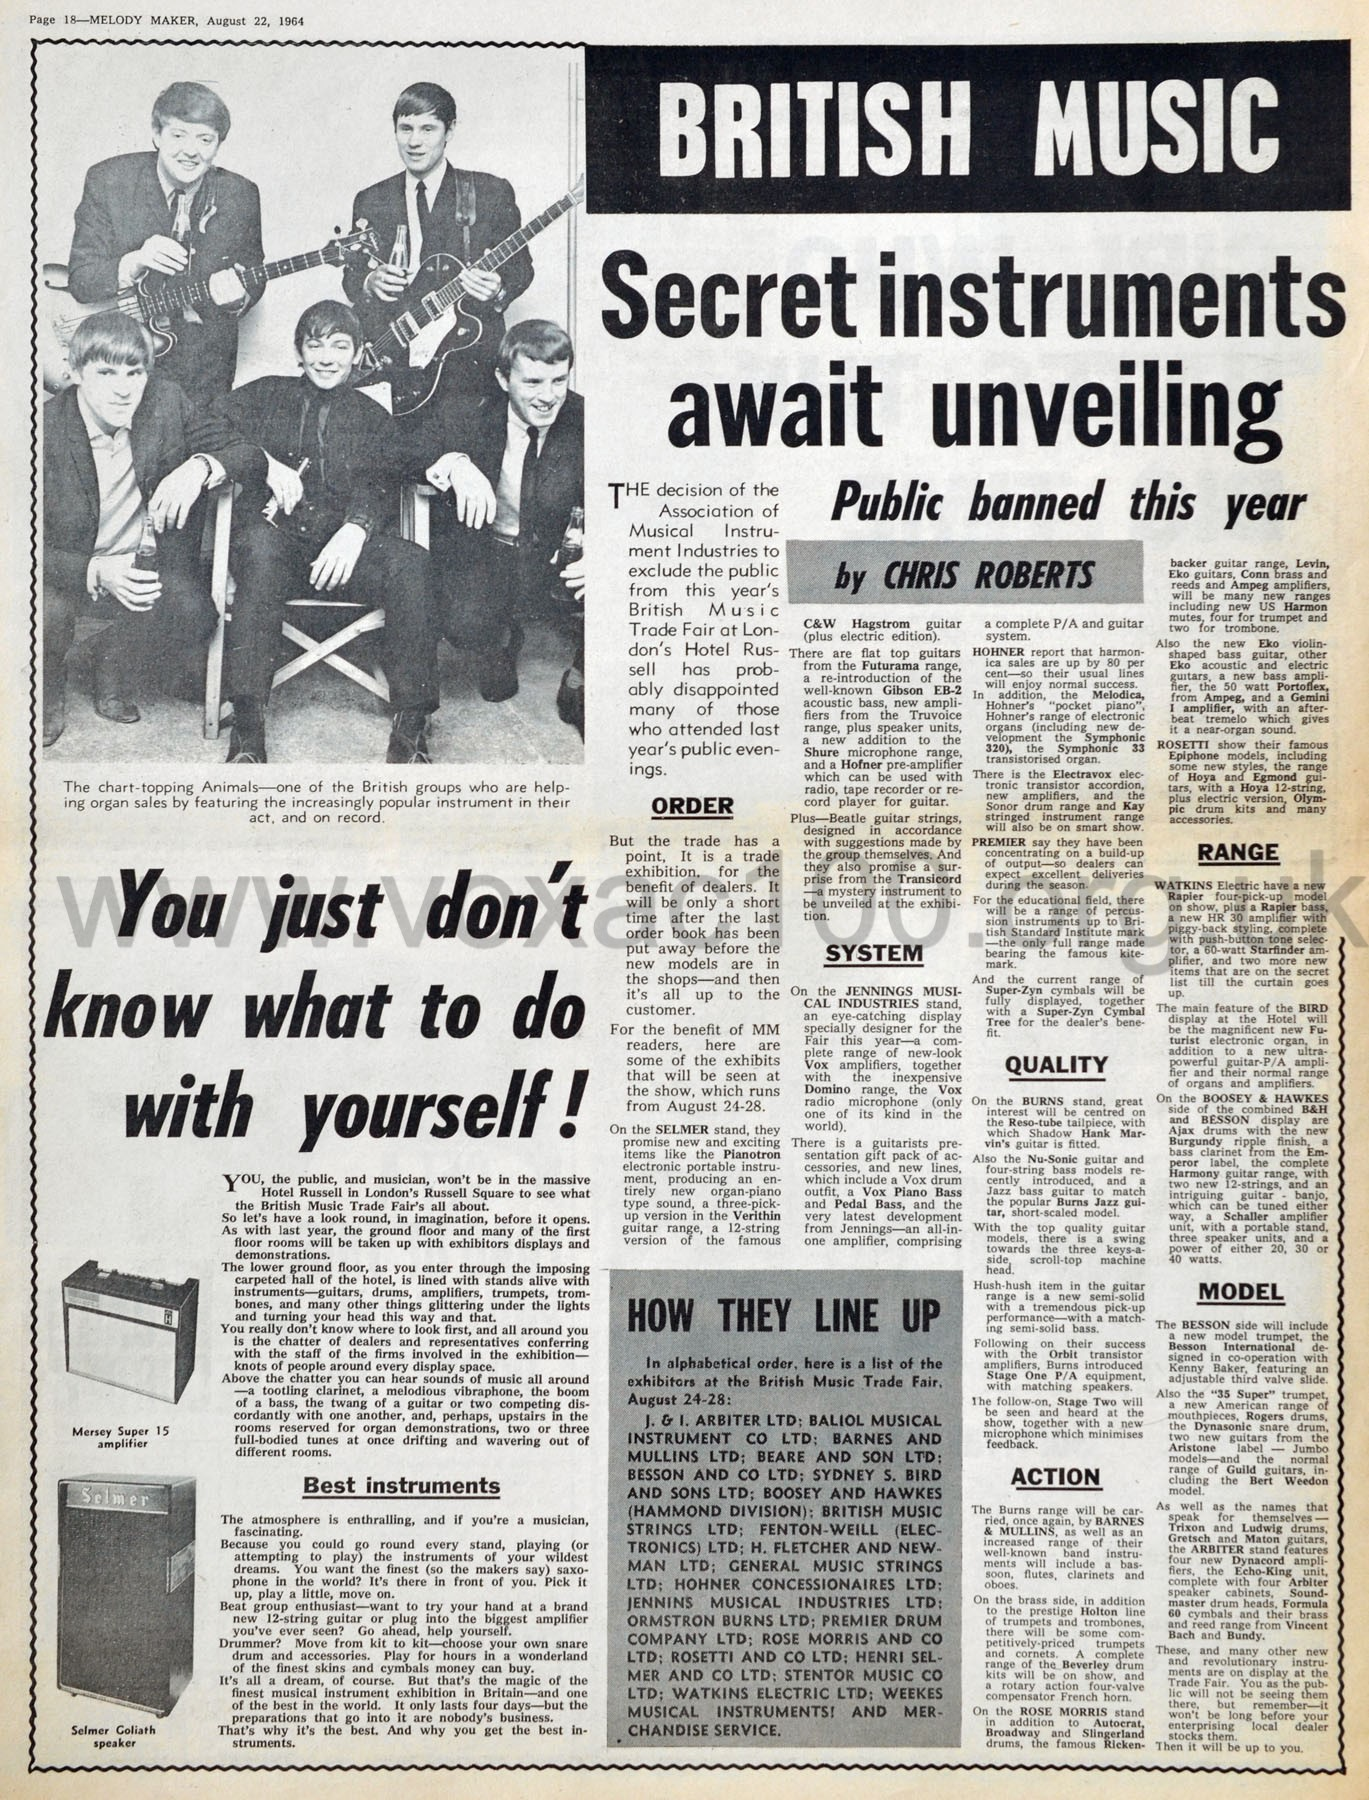 Melody Maker magazine, 22 August 1964, review of the British Musical Instrument Industries (AMII) Trade Fair